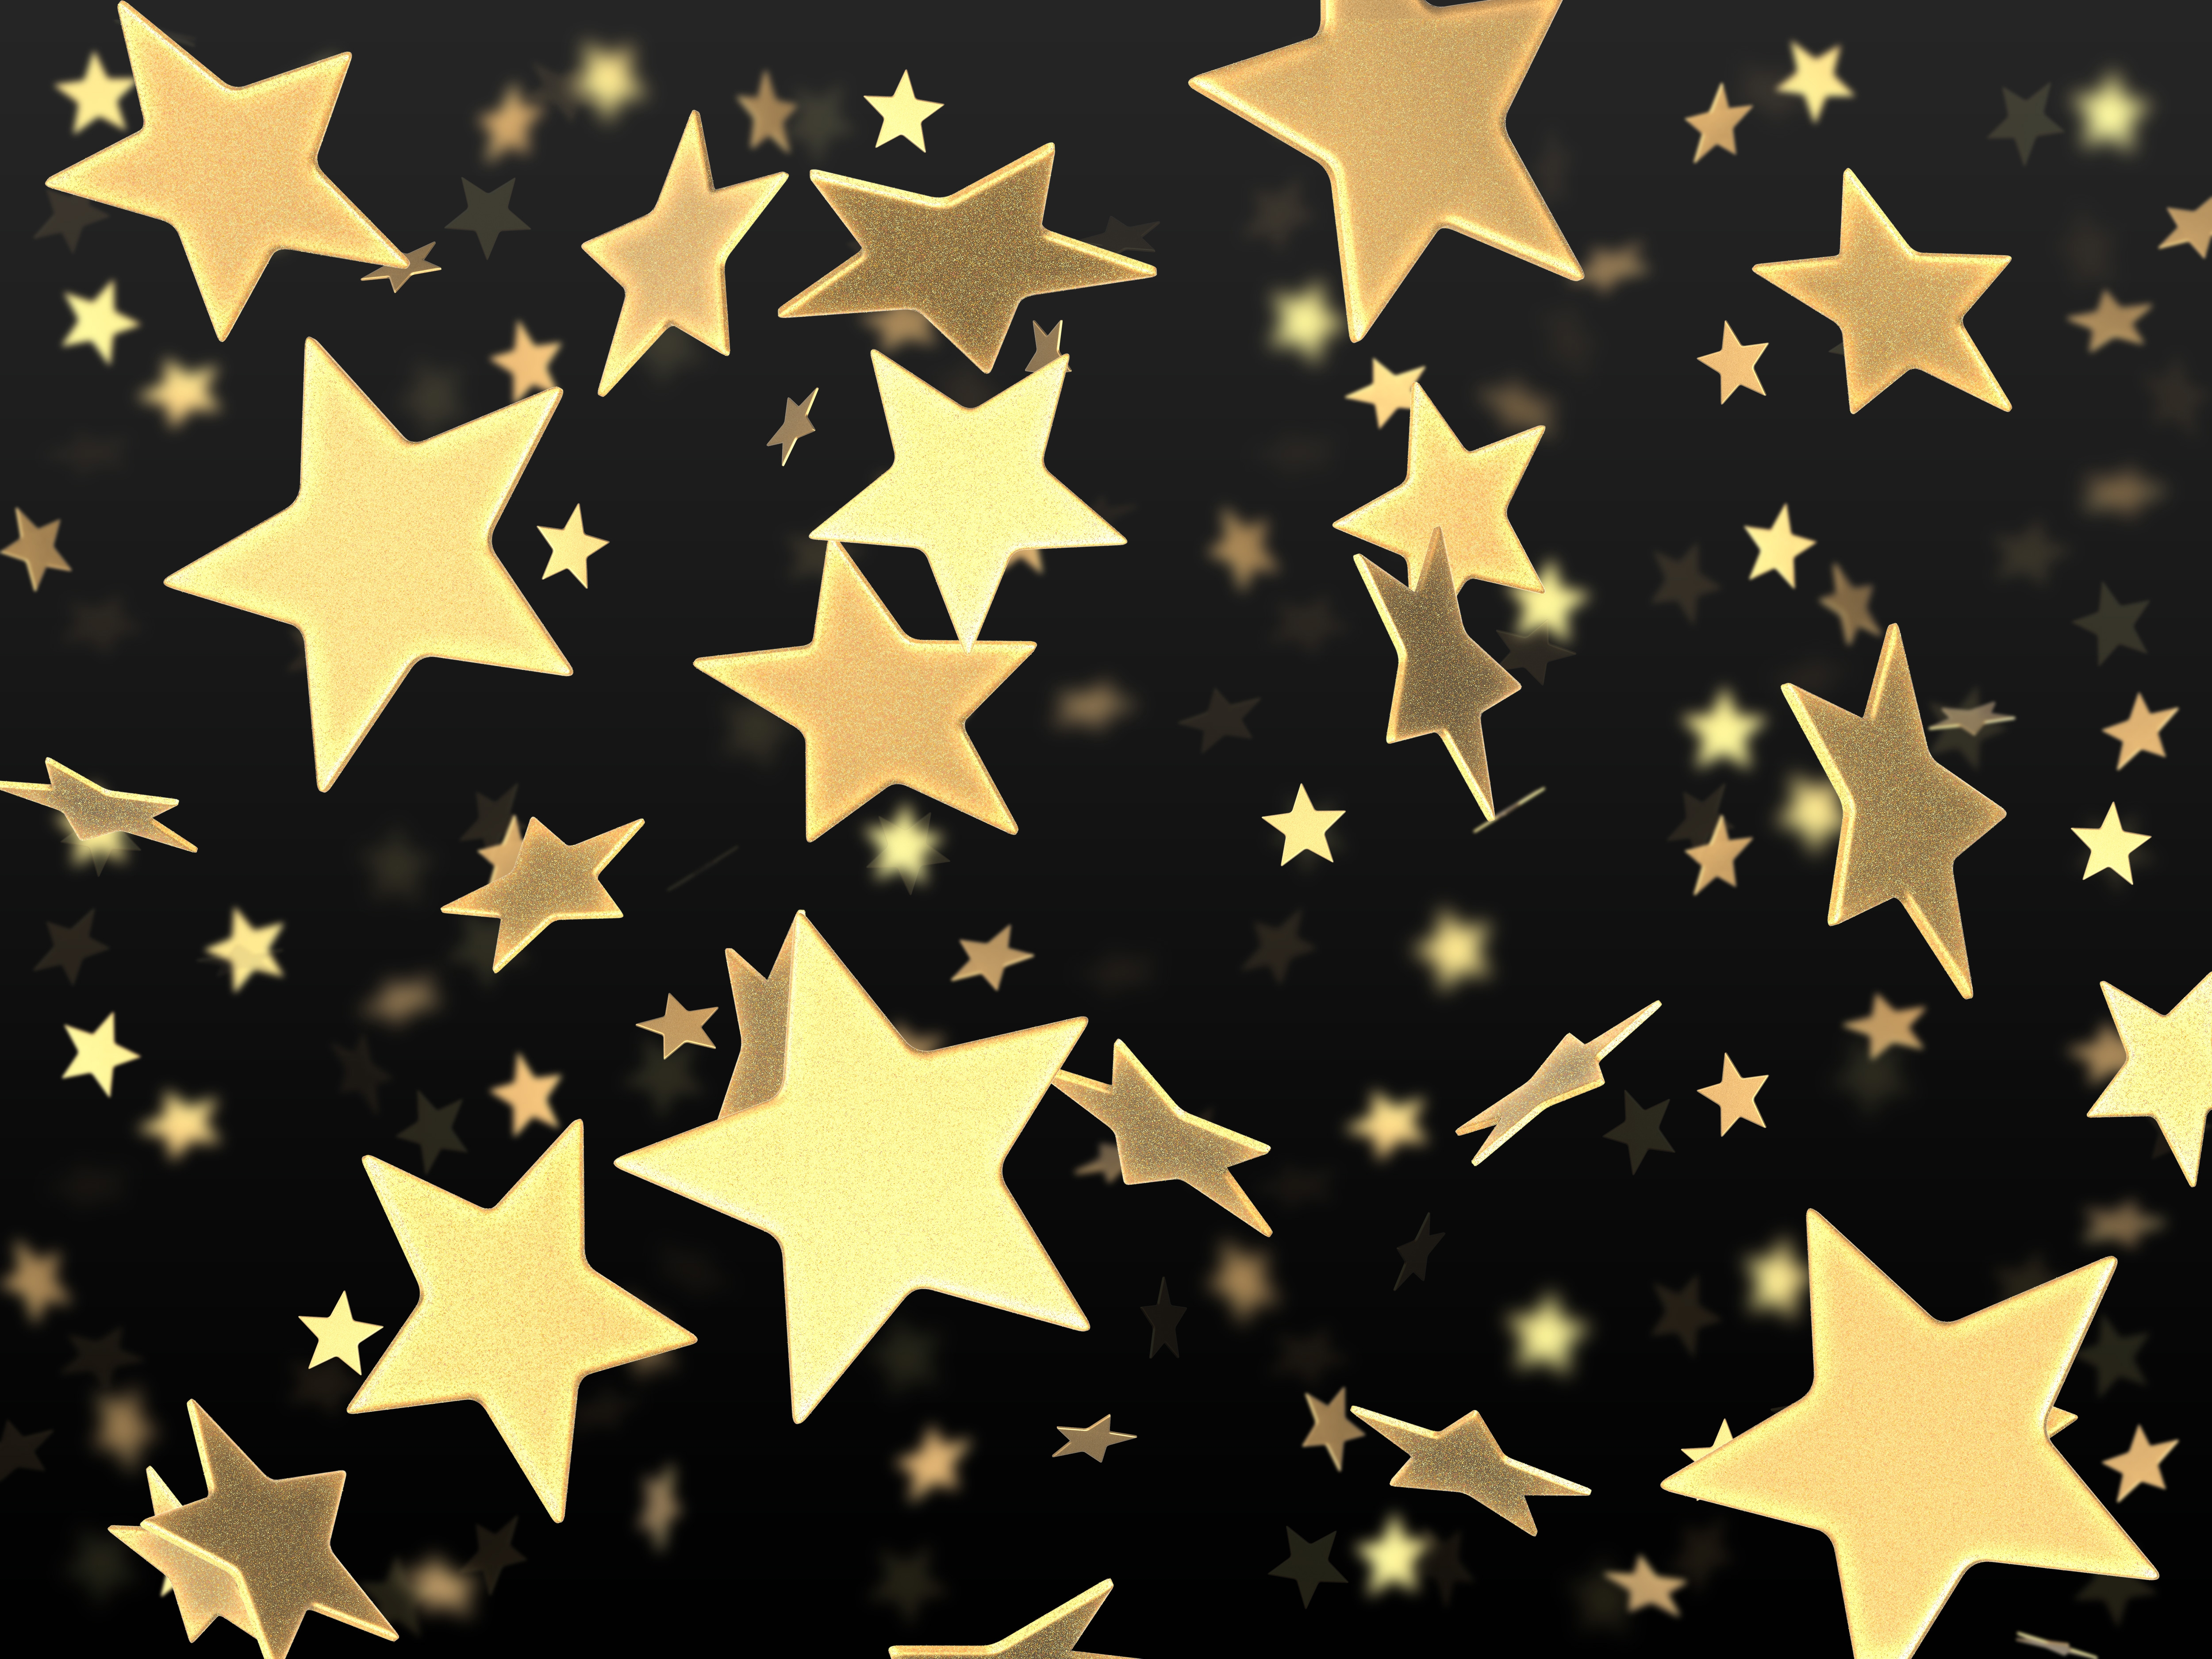 149253 download wallpaper Texture, Stars, Gold, Textures, Flight screensavers and pictures for free